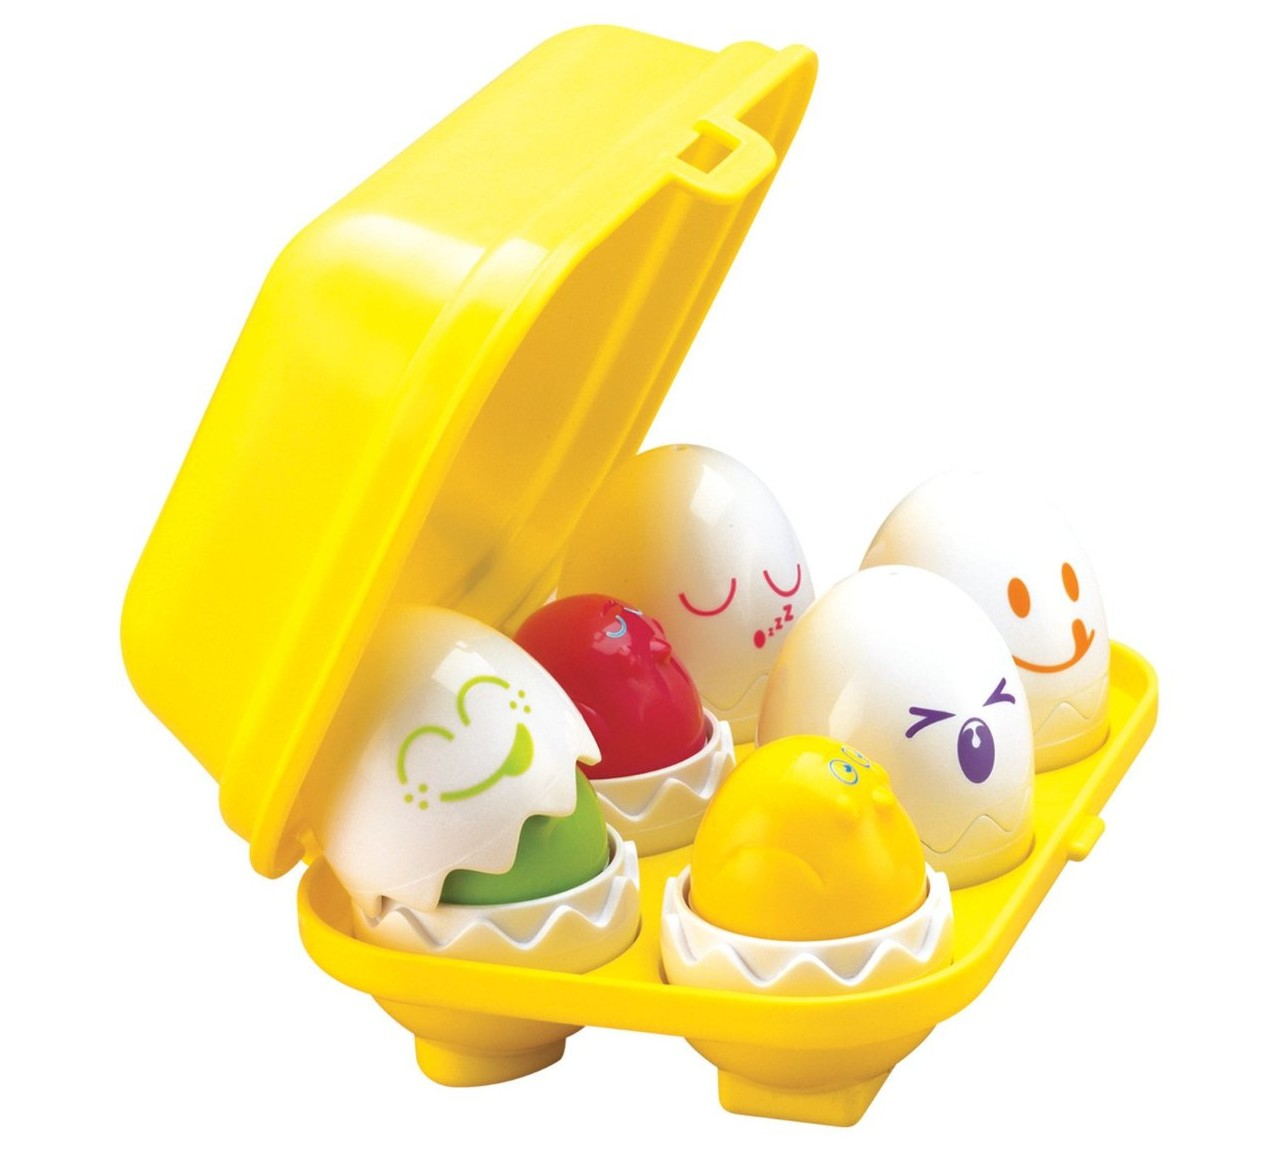 Egg Matching Toy